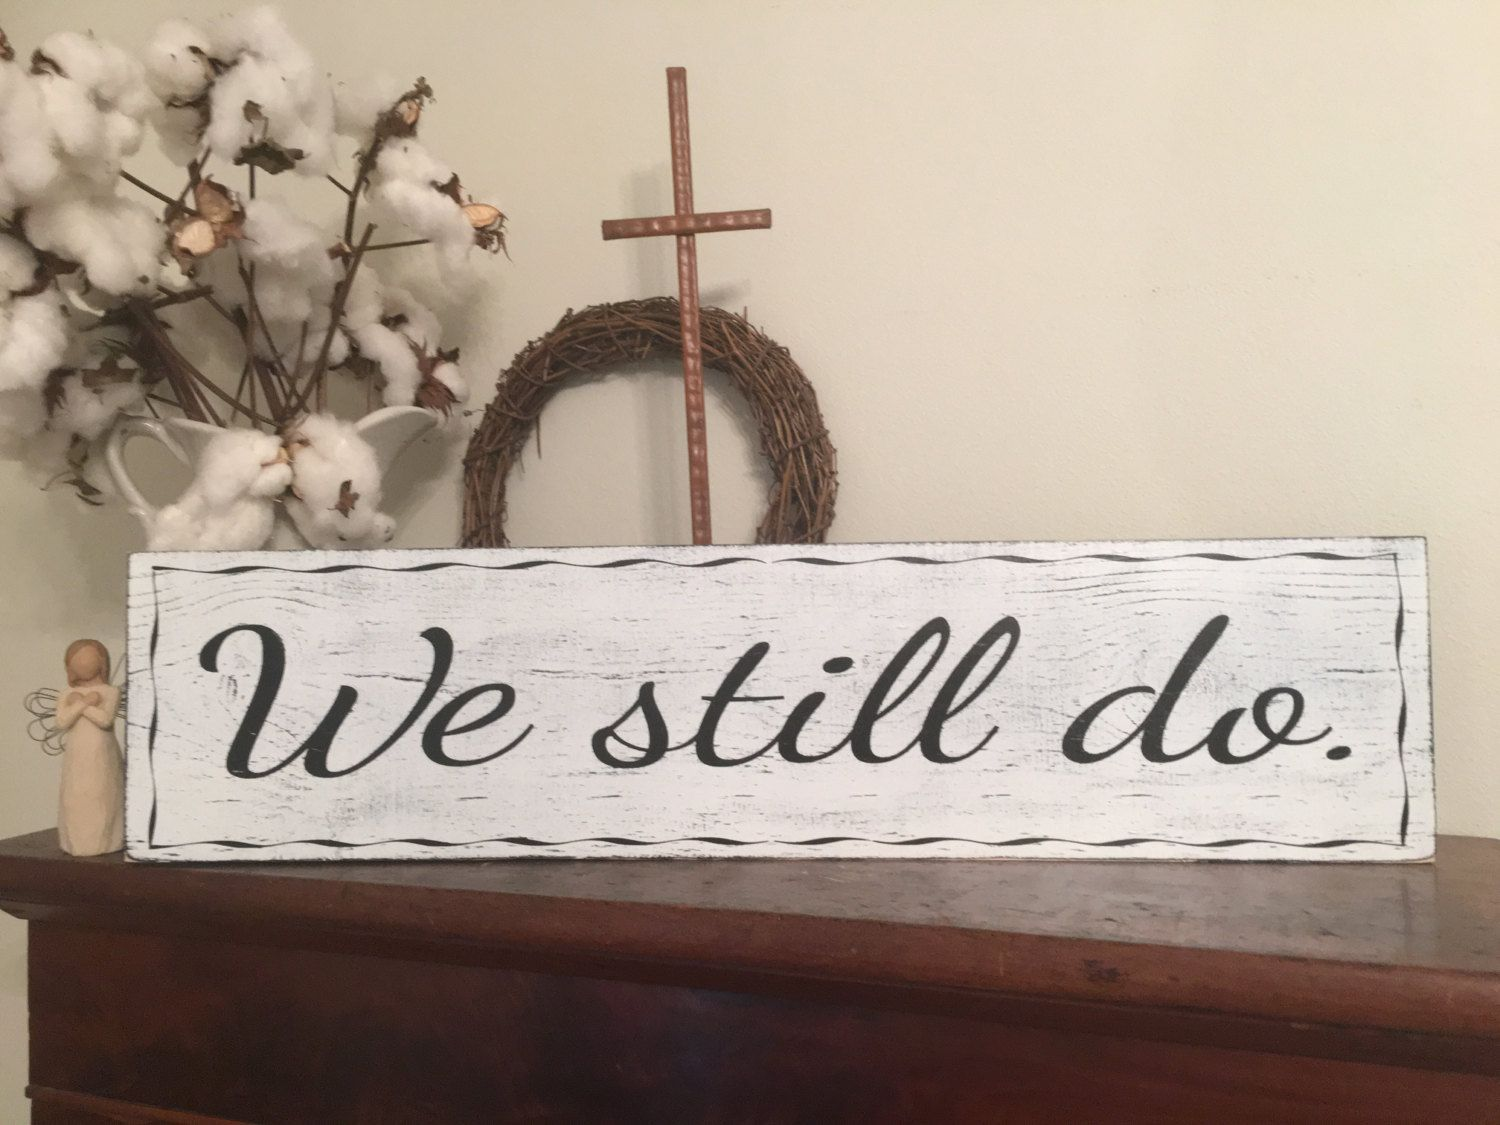 Wall Signs Decor Glamorous We Still Do Sign Fixer Upper Inspired Signs30X725 Rustic Wood Inspiration Design